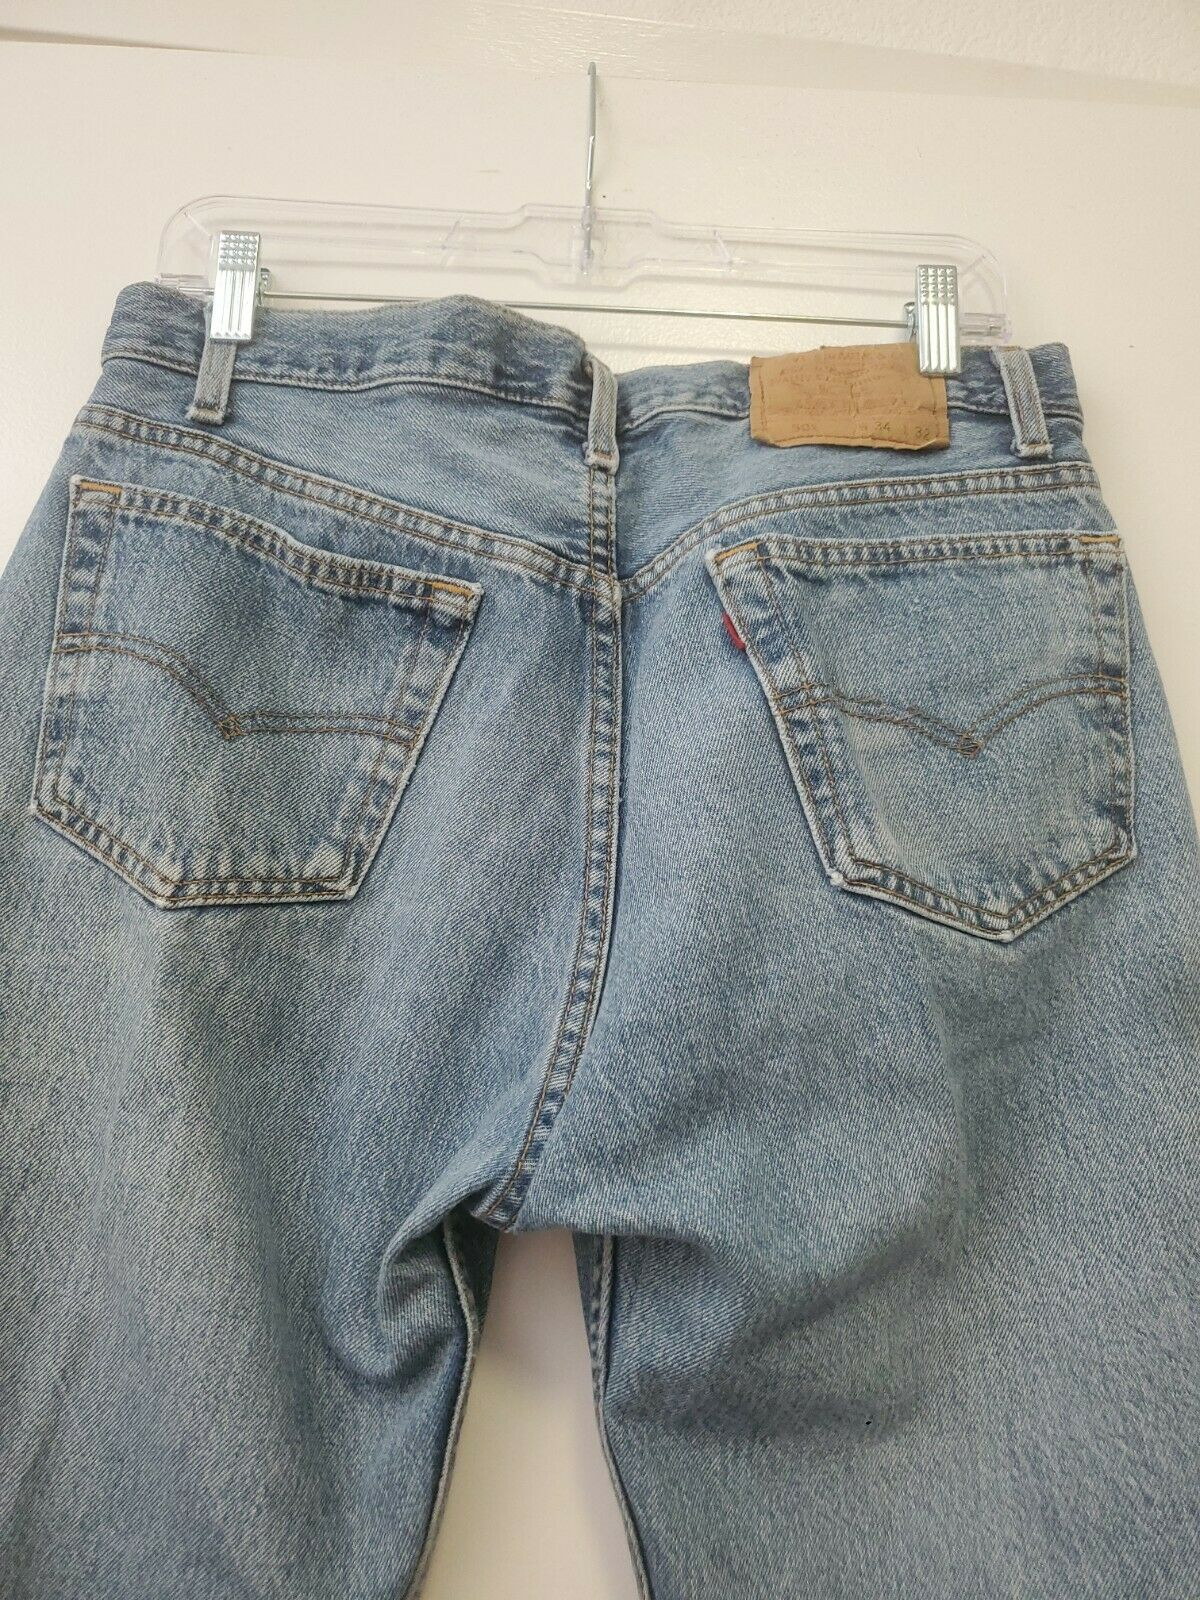 Vintage 501 Levis 34x32 Made In USA - image 6